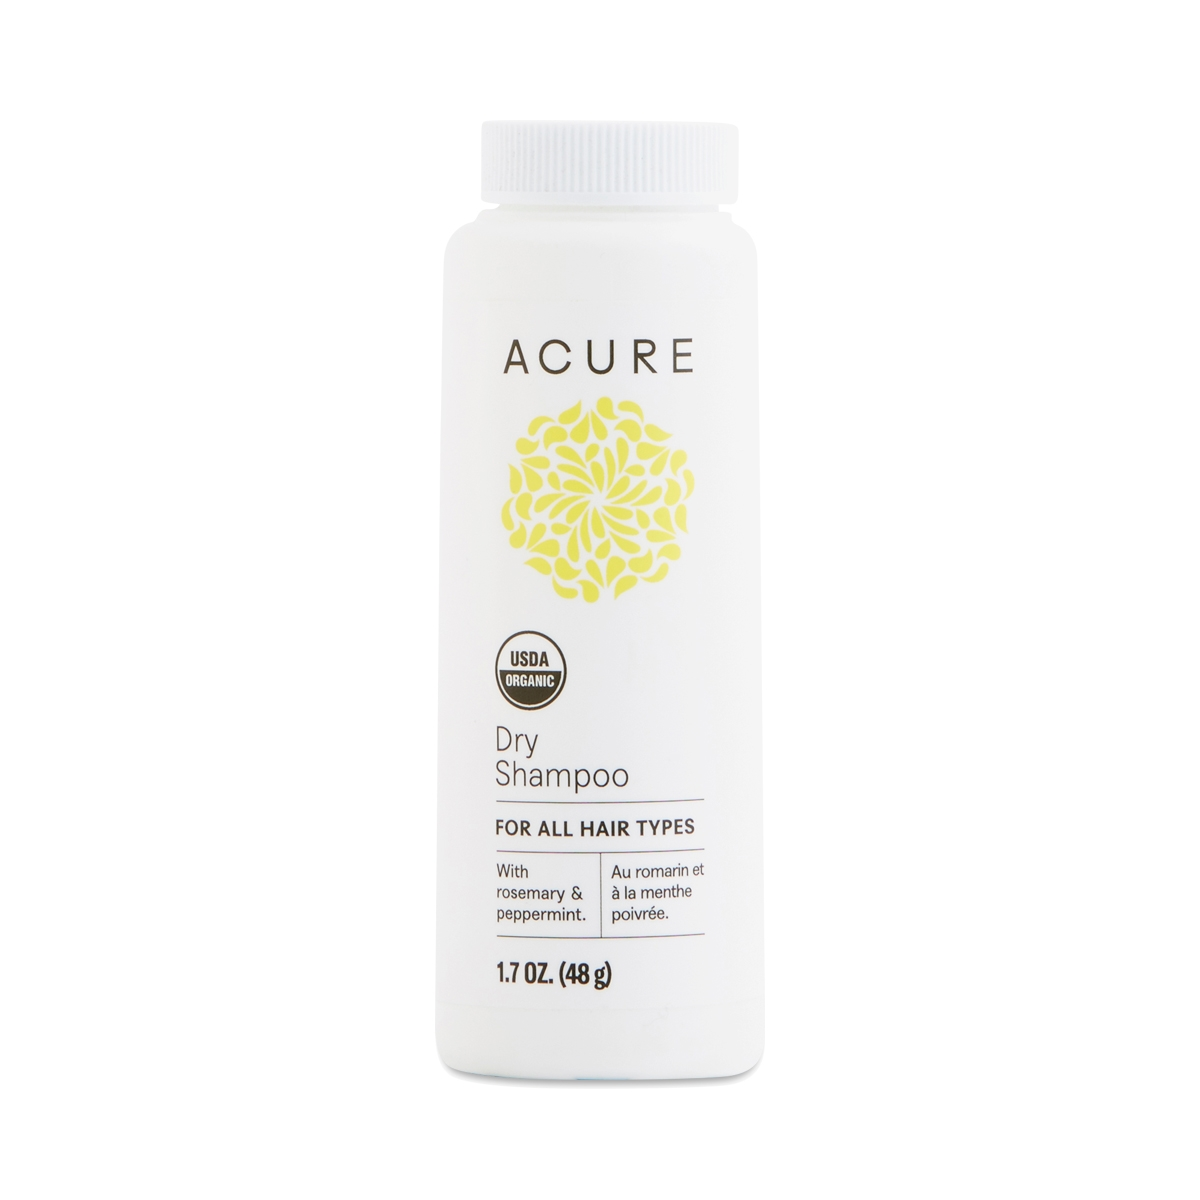 Dry Shampoo By Acure